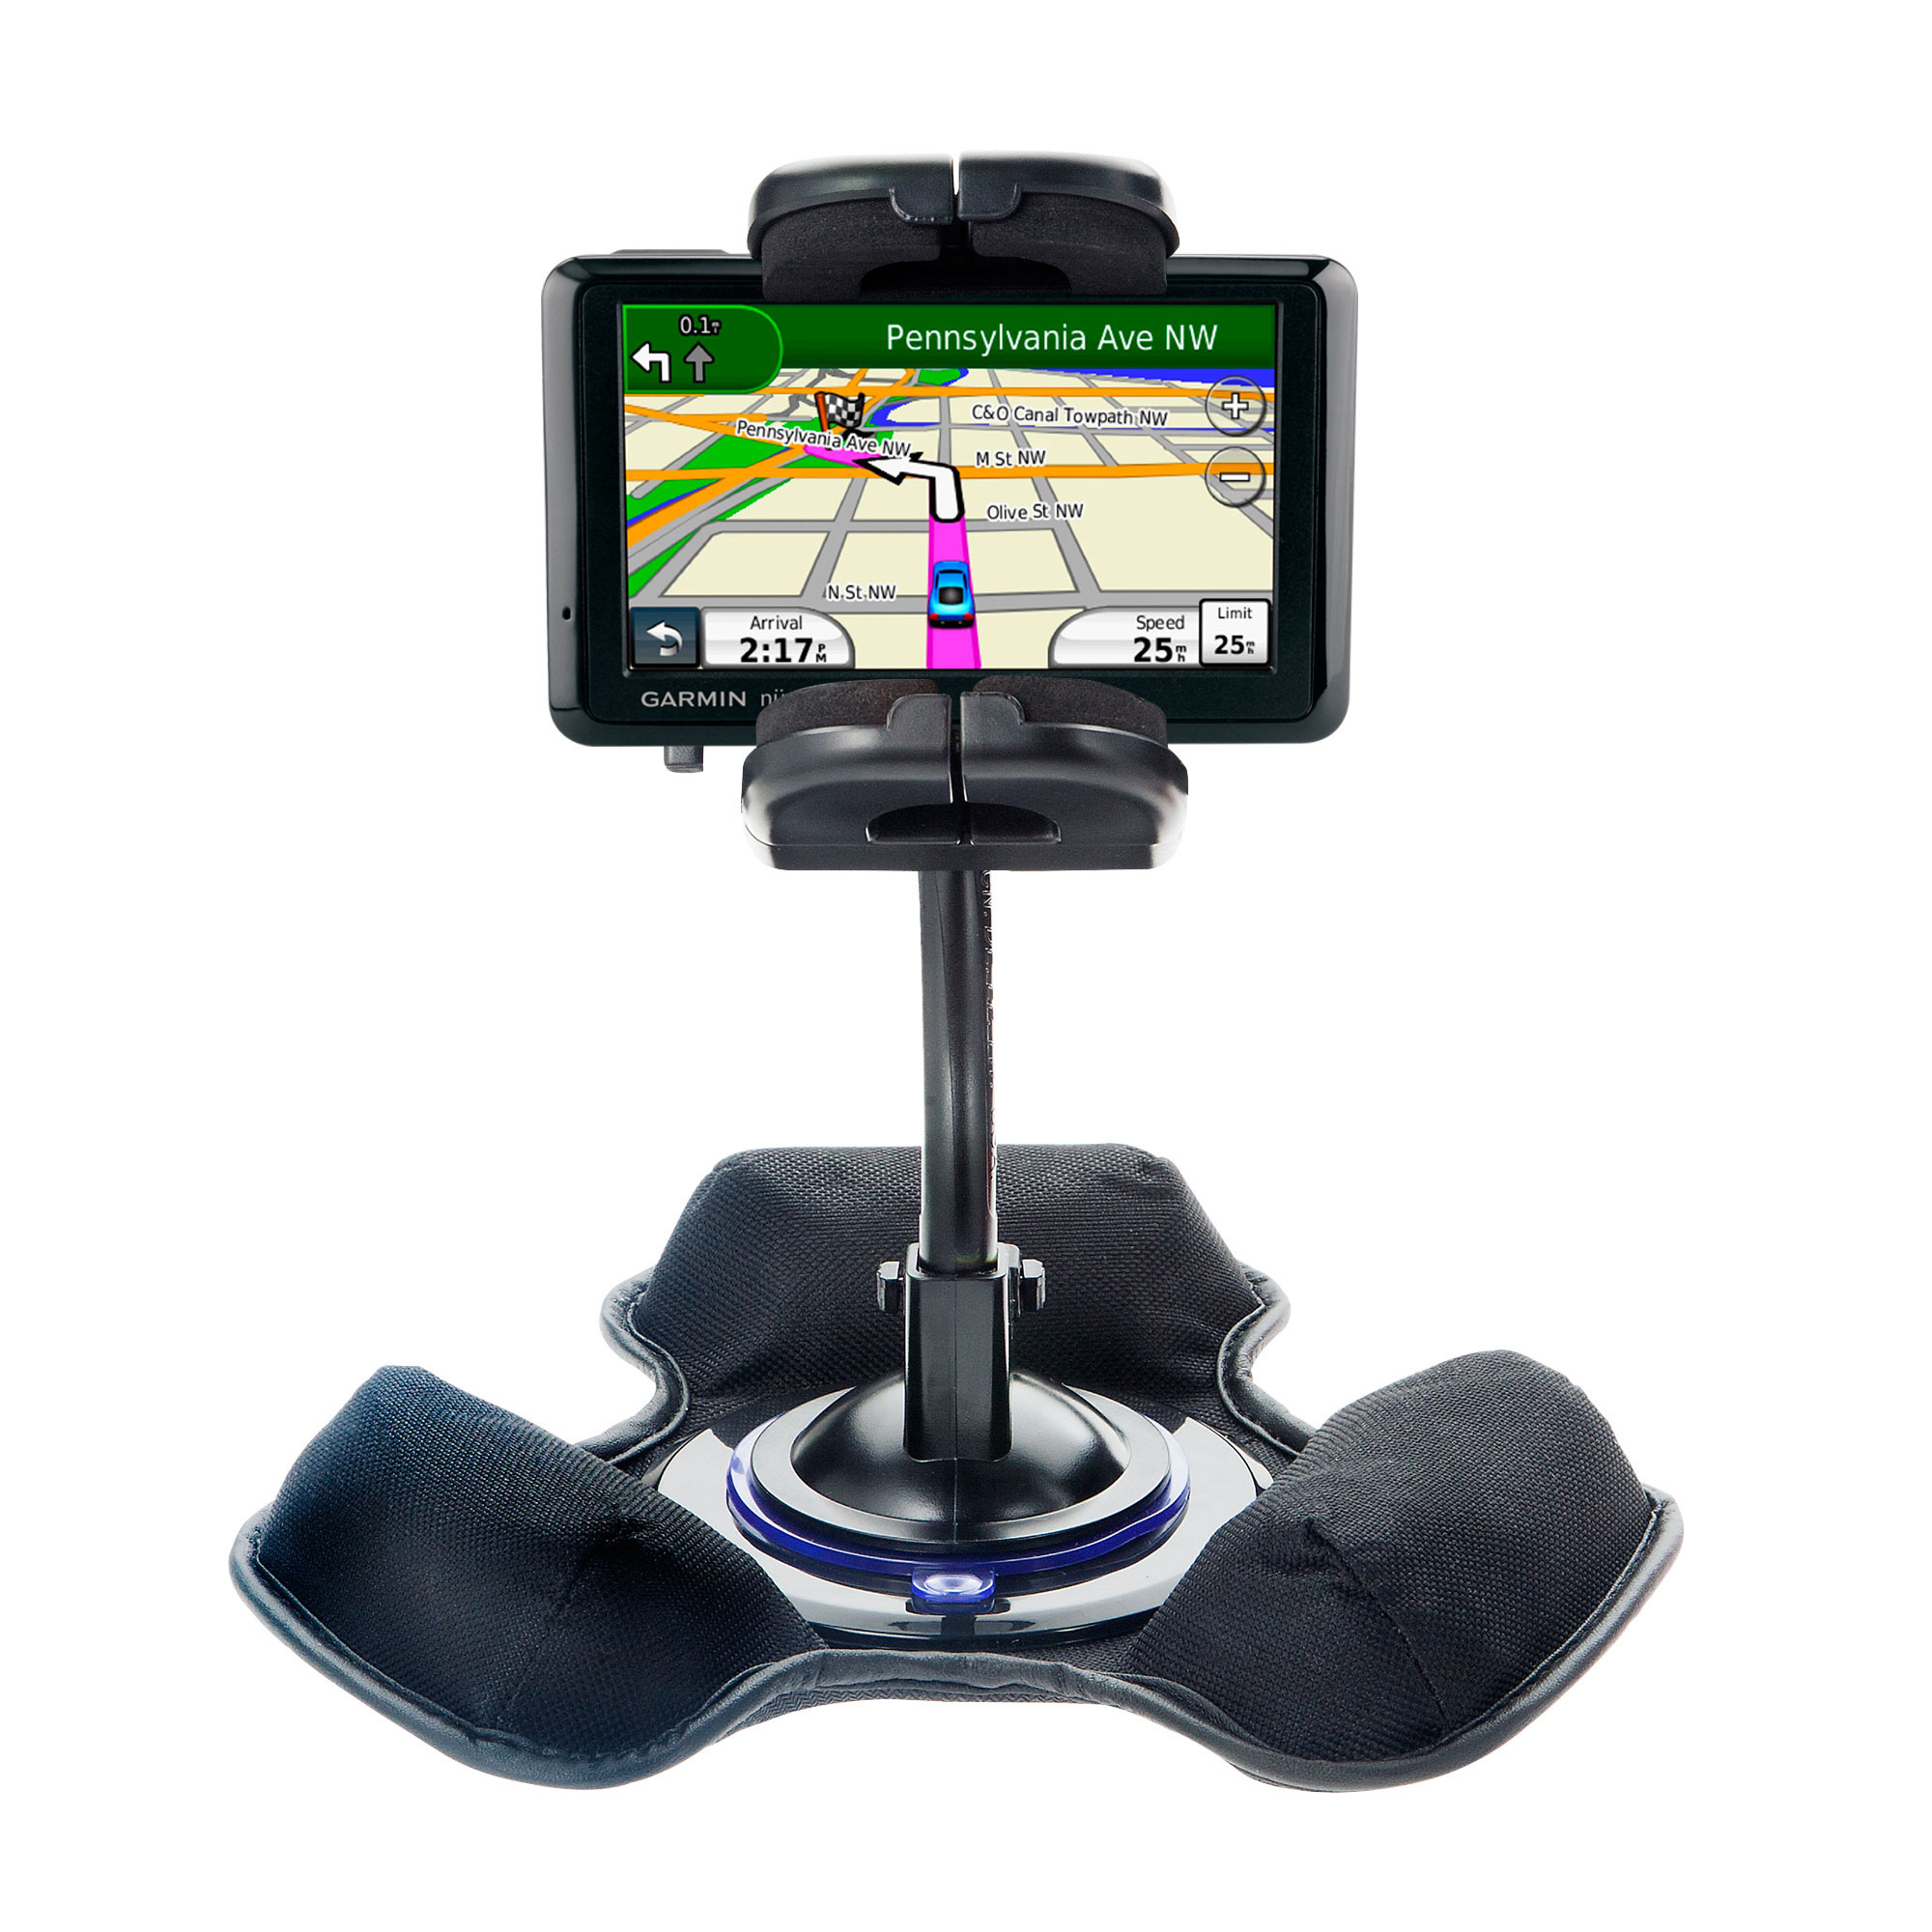 Dash and Windshield Holder compatible with the Garmin Nuvi 205W